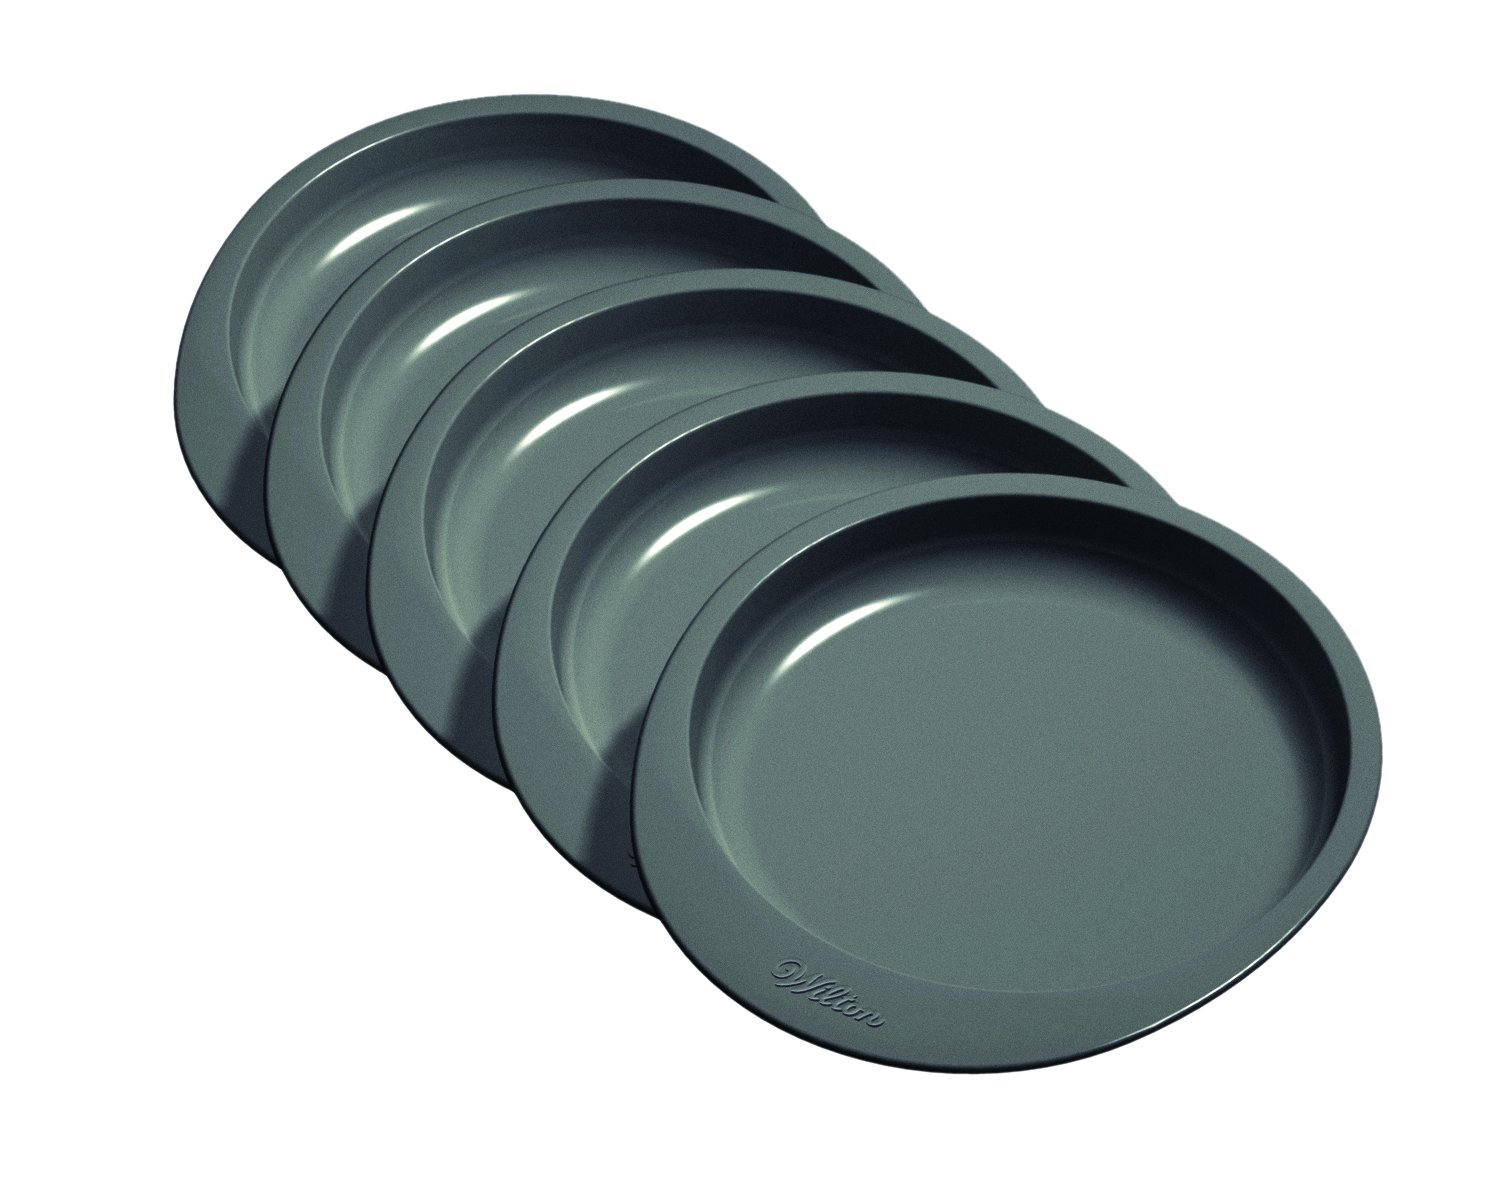 Wilton 2105-0112 Easy Layers! 6 Inch (Set of 5) by Wilton (Image #4)